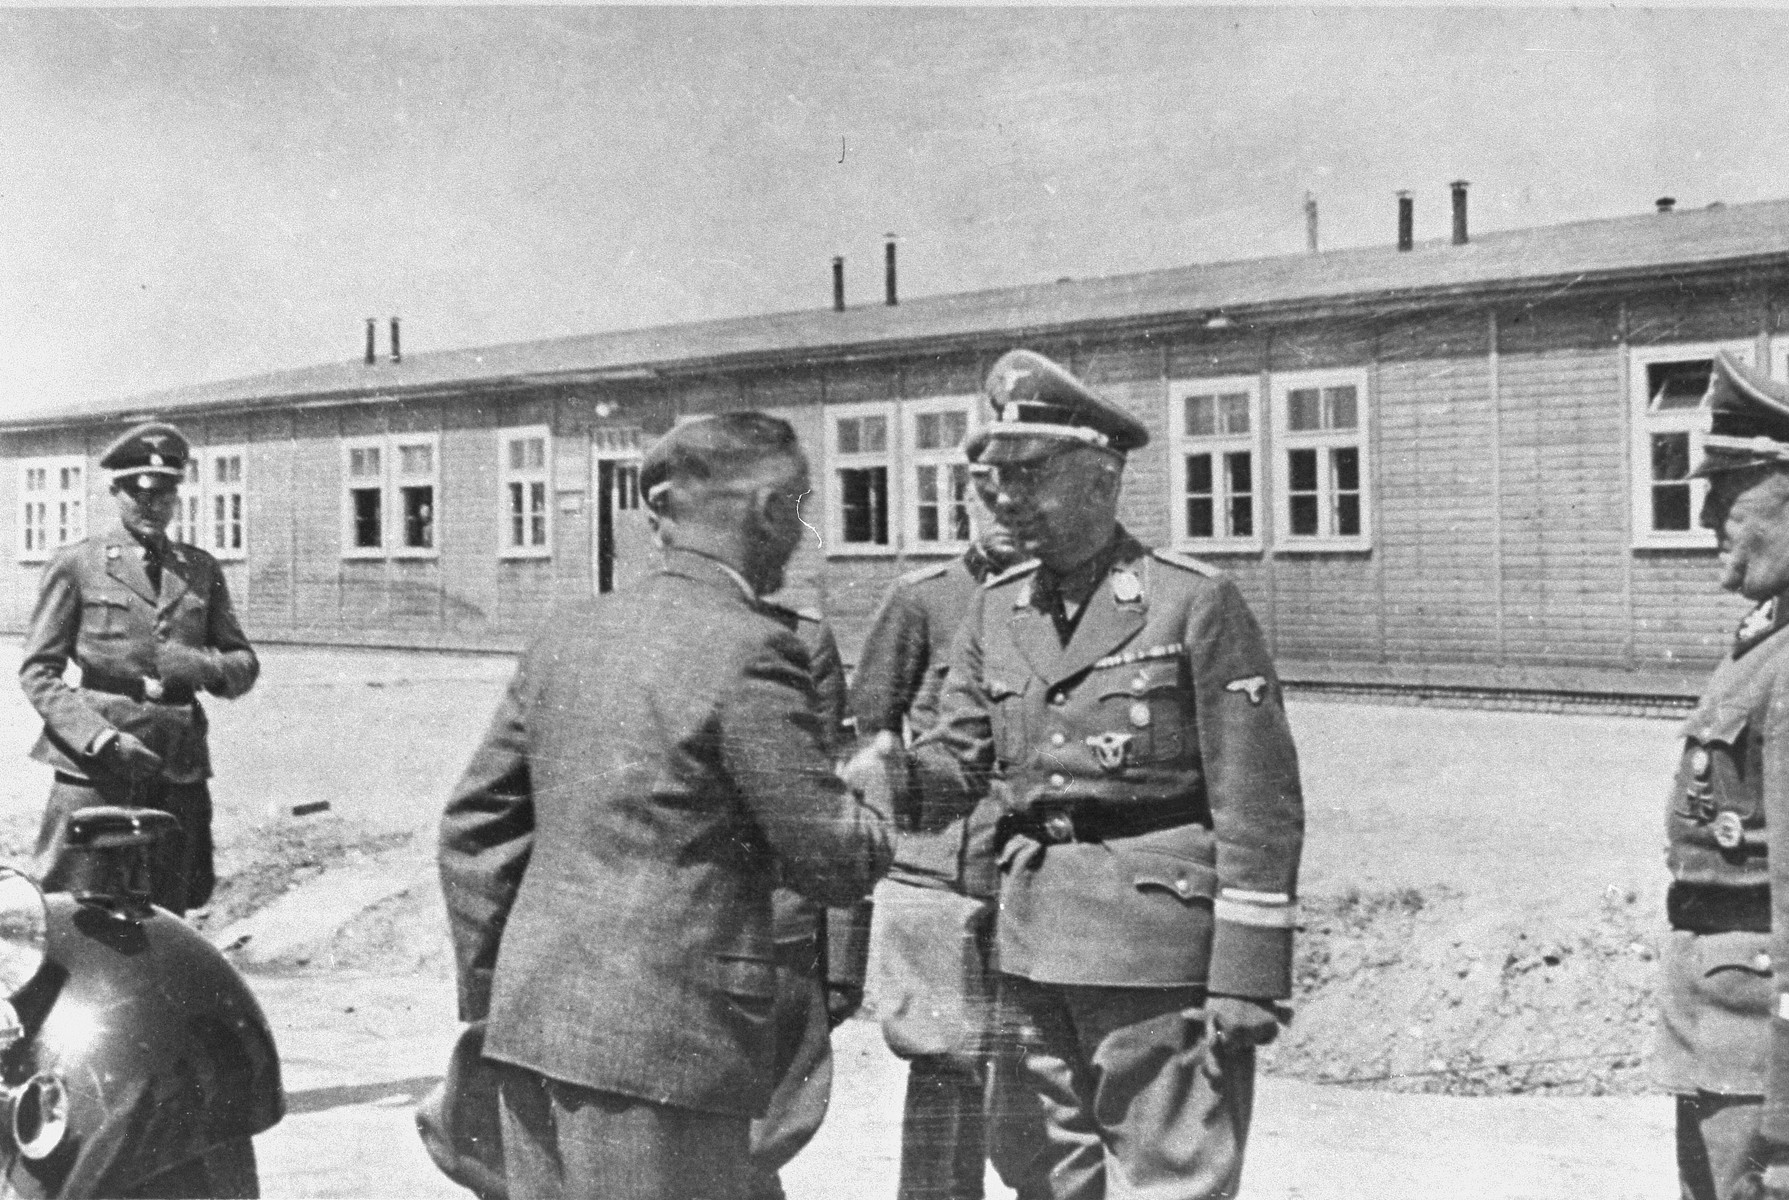 During a tour of the Monowitz-Buna building site, Reichsfuehrer SS Heinrich Himmler shakes hands with one of the engineers supervising the construction.  Gauleiter Bracht, SS-Obergruppenfuehrer Schmauser and SS-Gruppenfuehrer Kammler are accompanying Himmler.